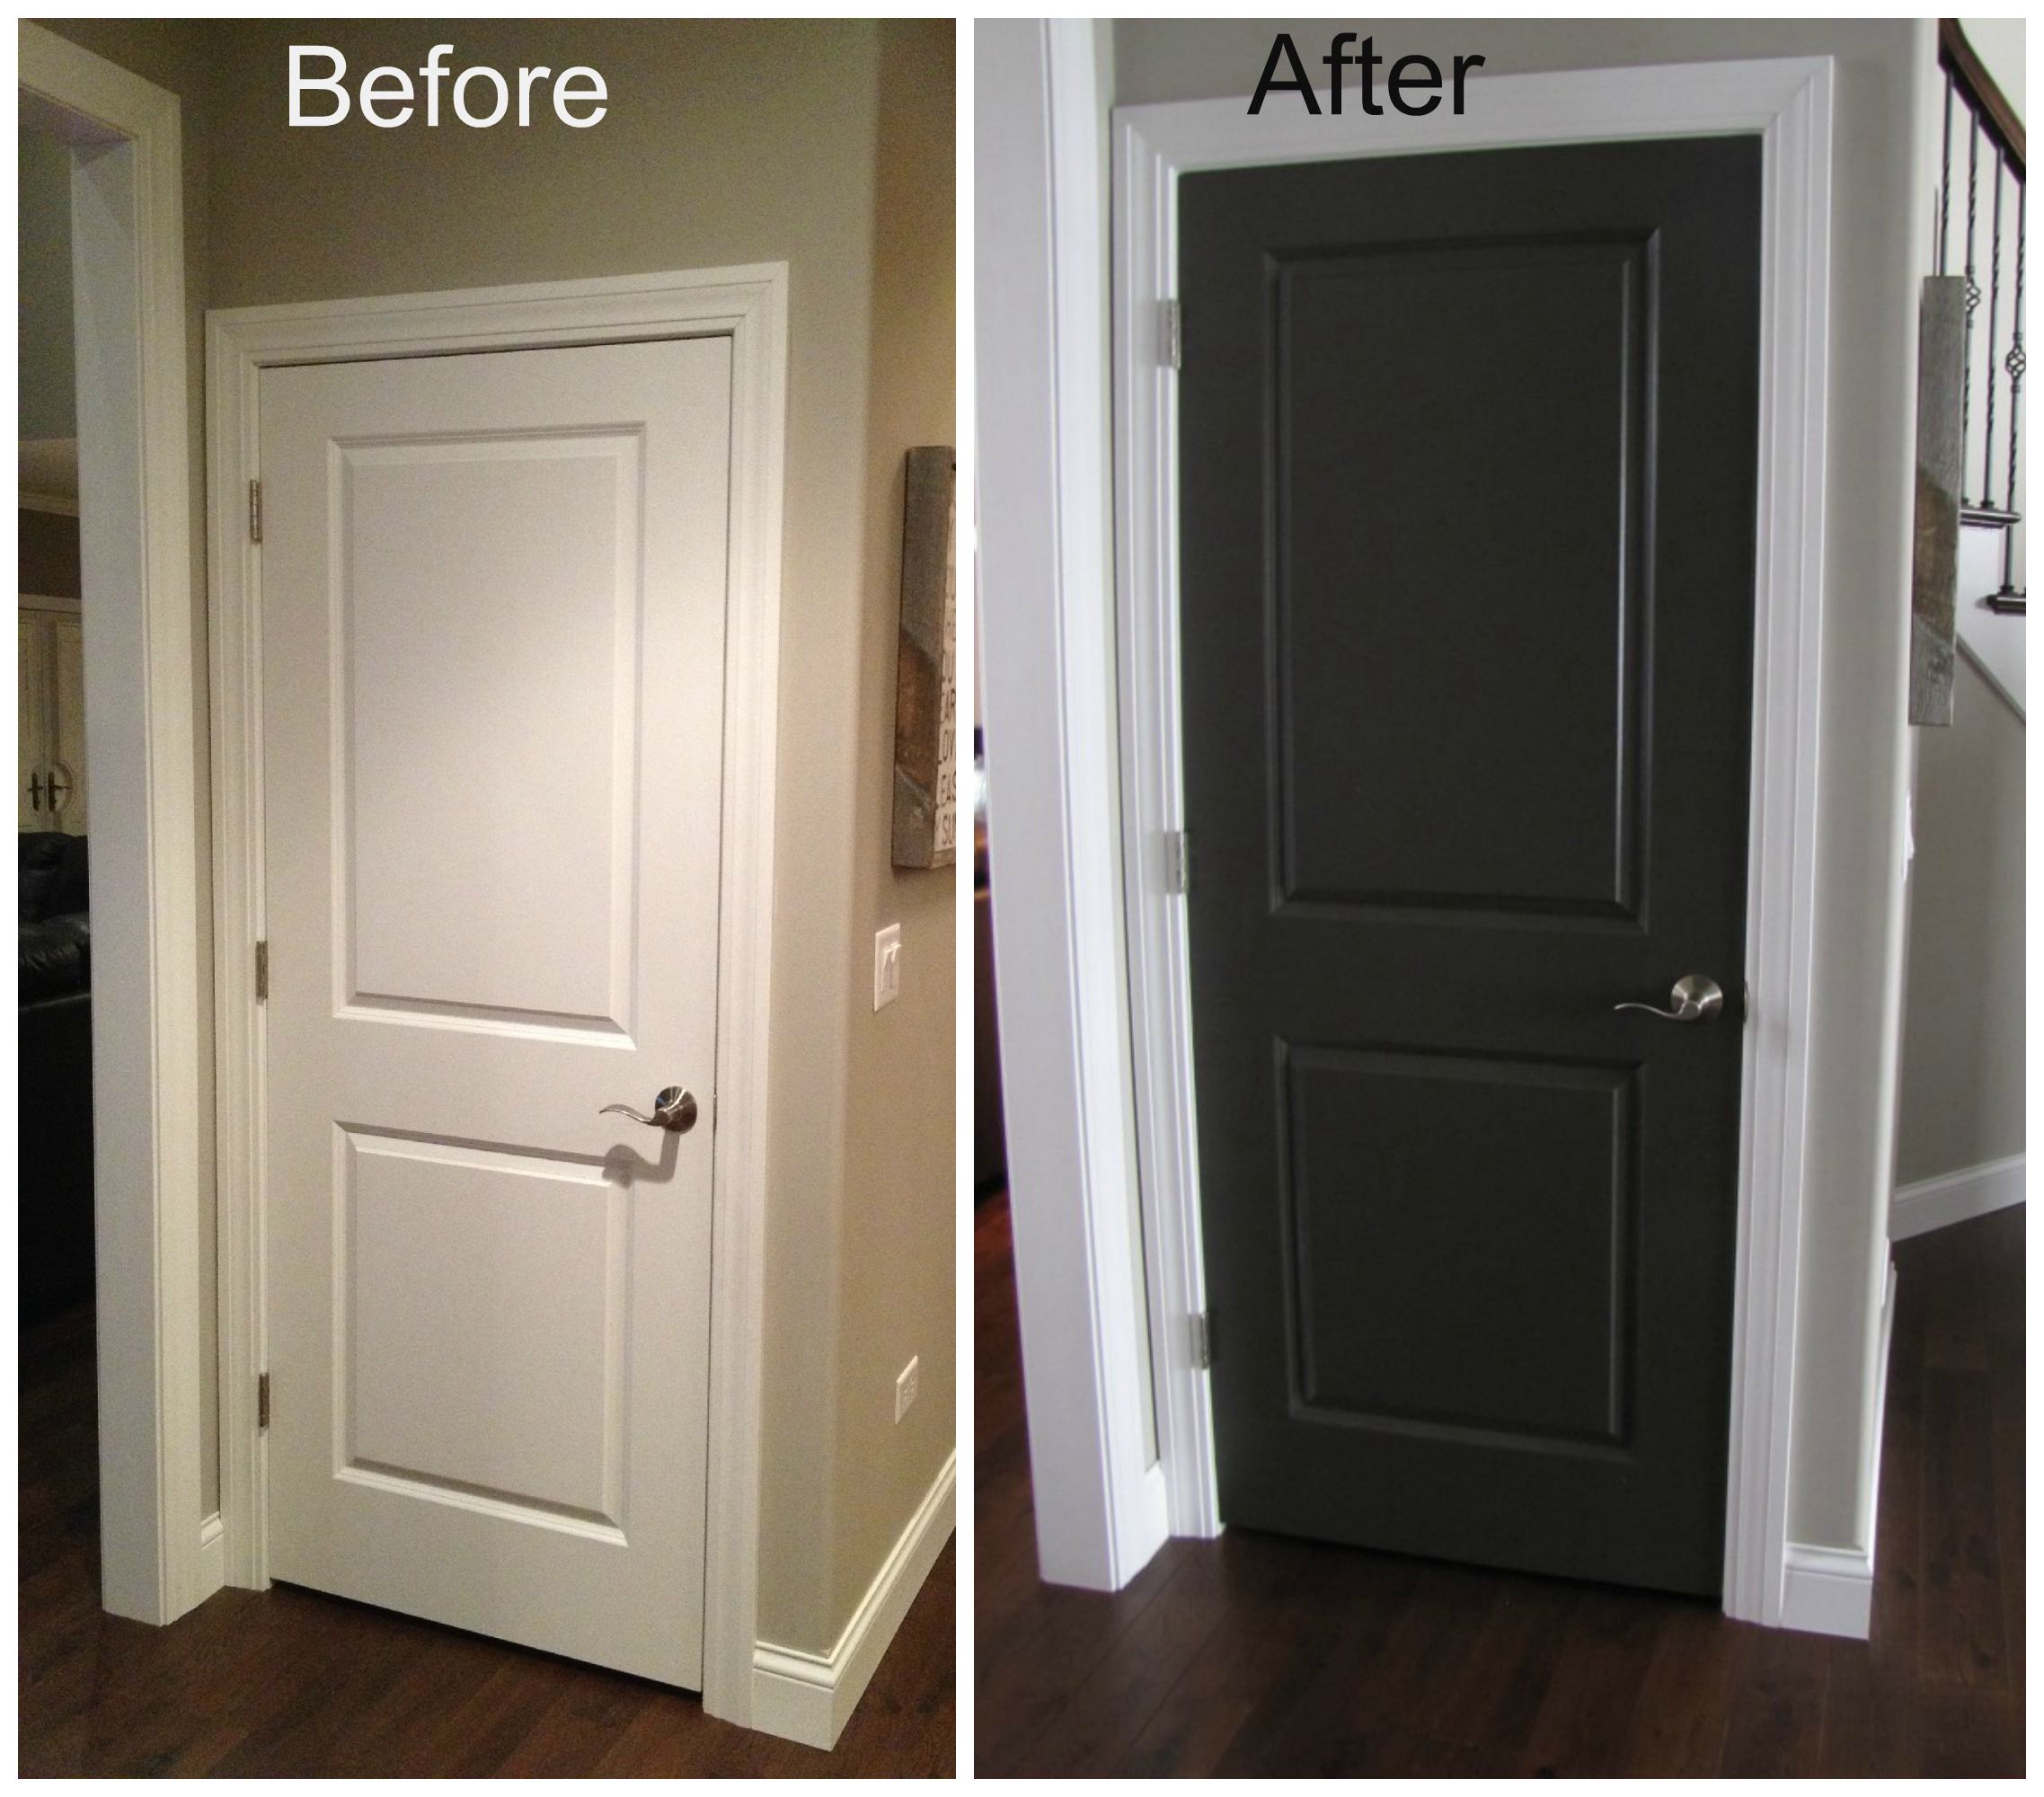 Marvelous Black Interior Doors Before And After | Door  Before And After | My Life |  Pinterest | Black Interior Doors, Interior Door And Door Paint Colors. Pictures Gallery